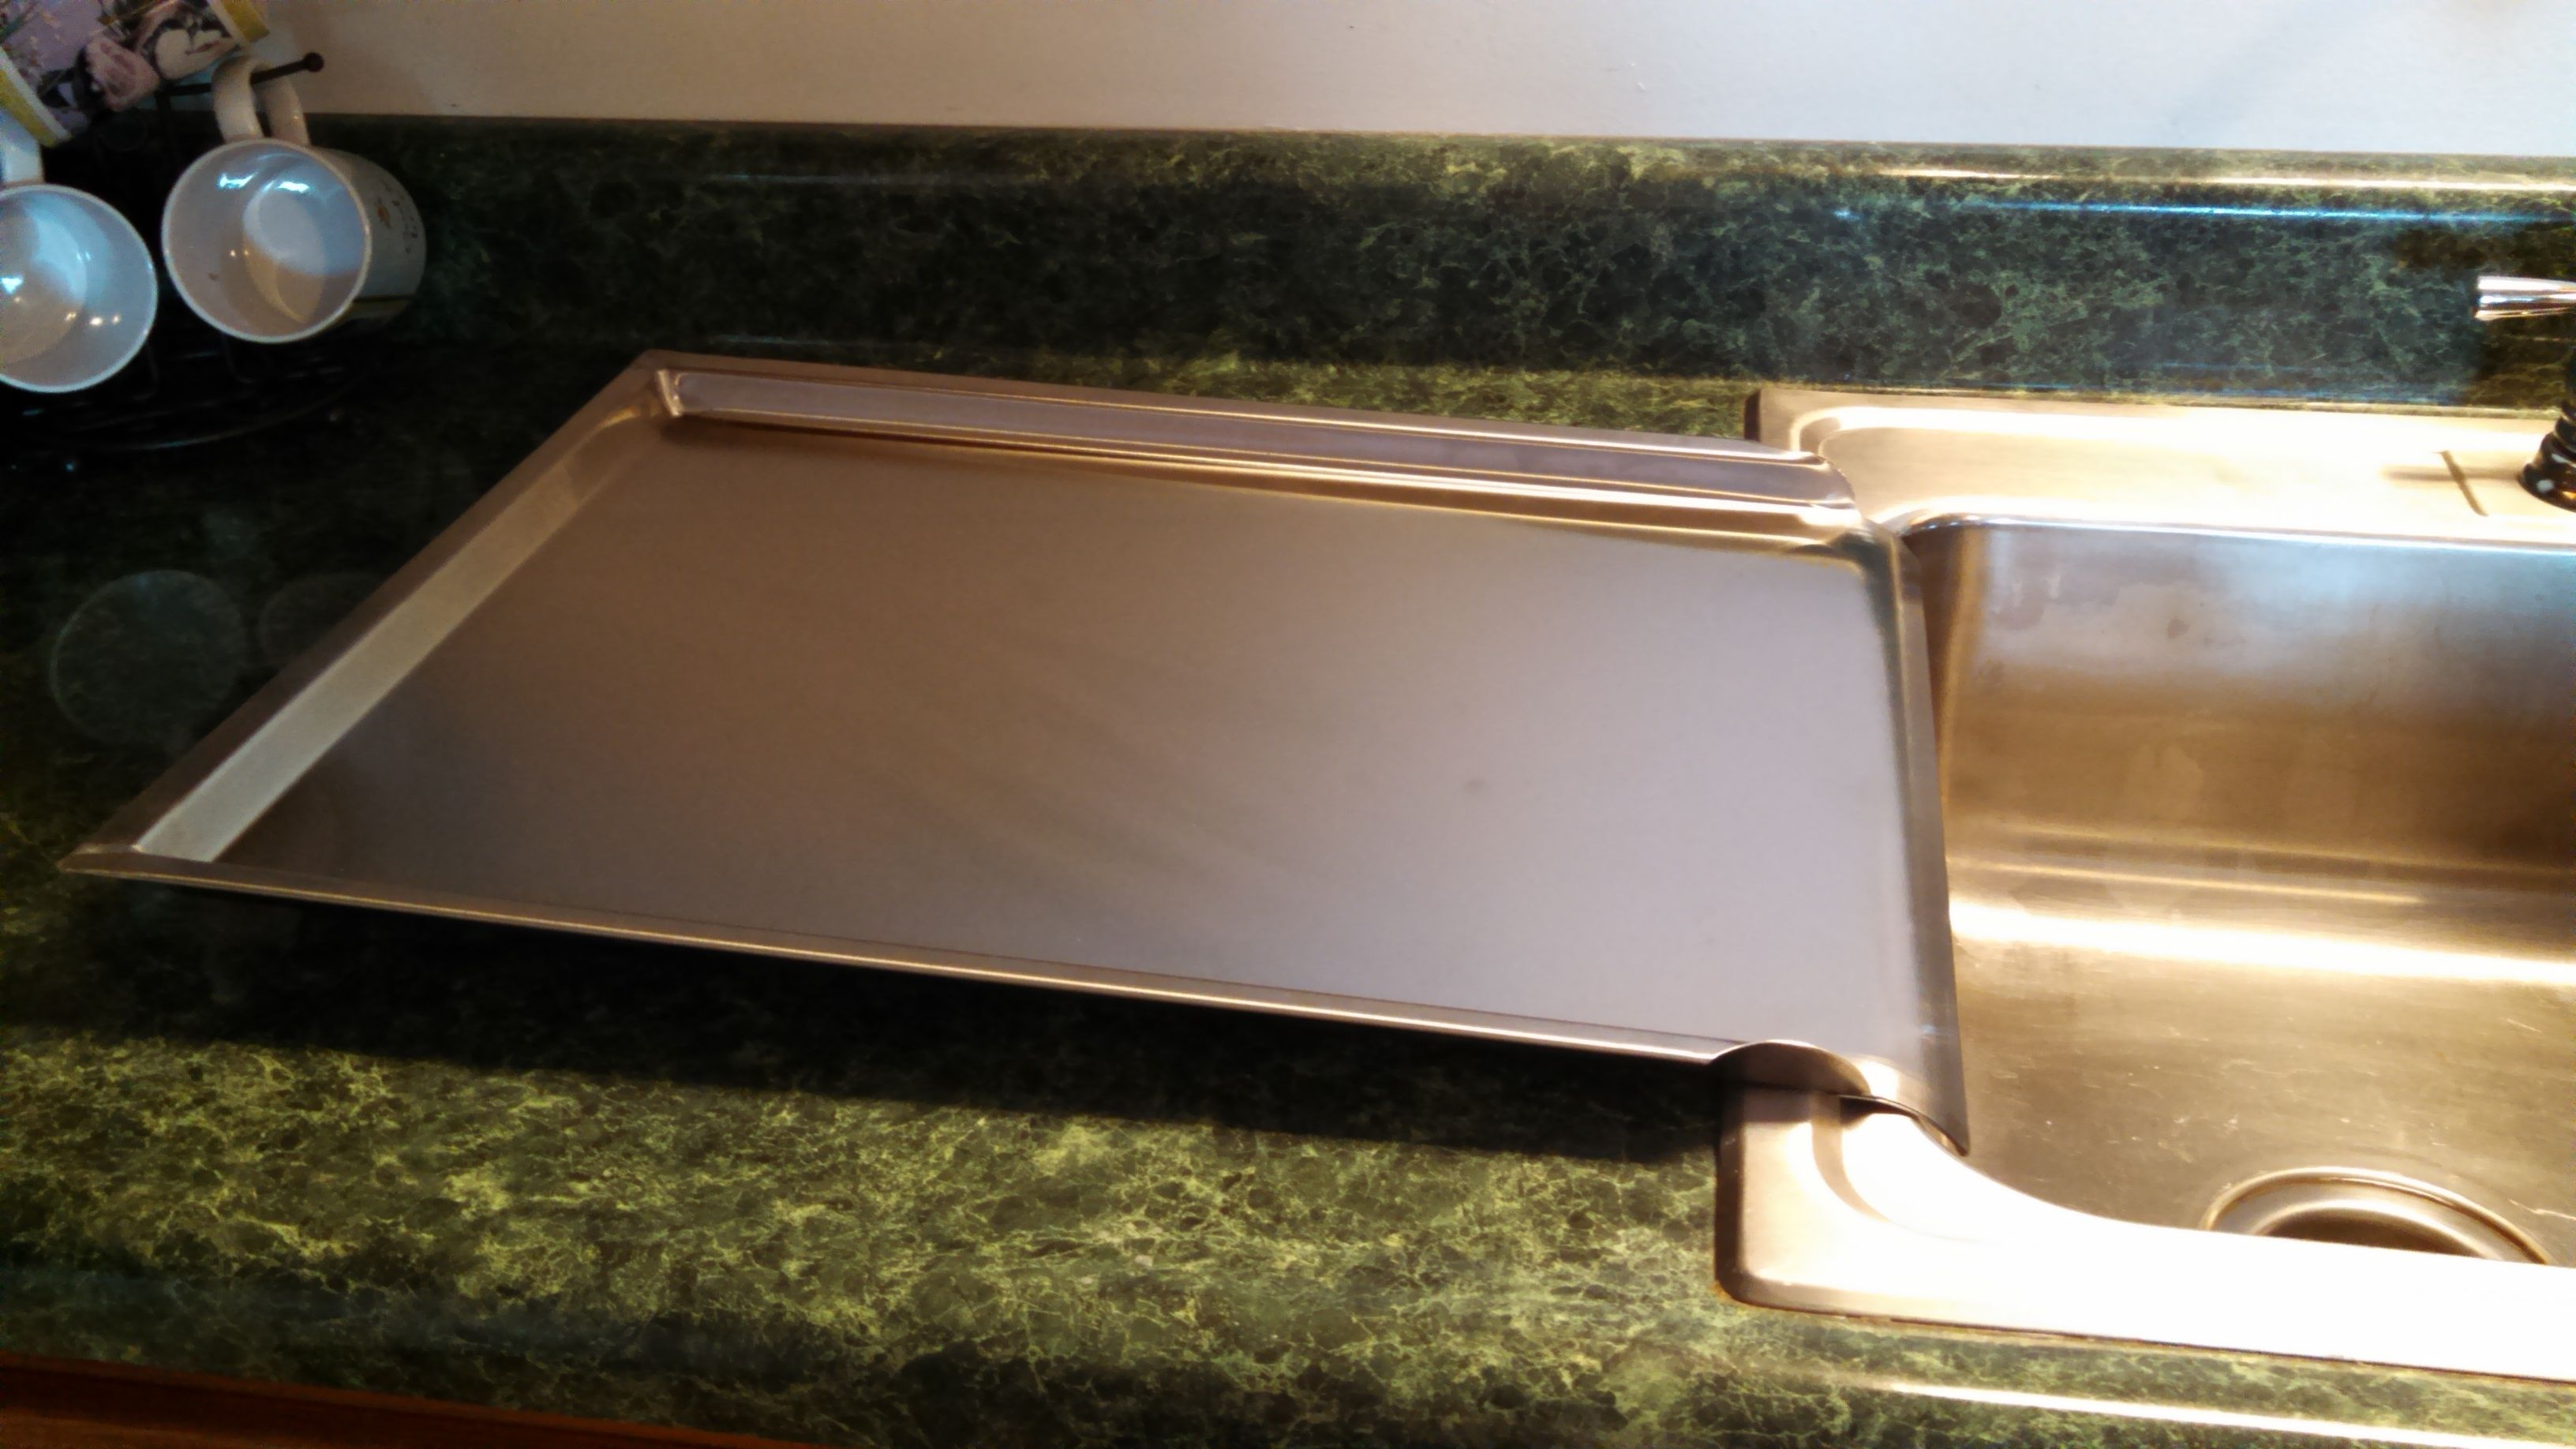 Durable 16 X 20 Stainless Steel Drainboard Amish Made 3 Raised Sides Stainless Steel Drainboard Kitchen Sink Drainboard Stainless Steel